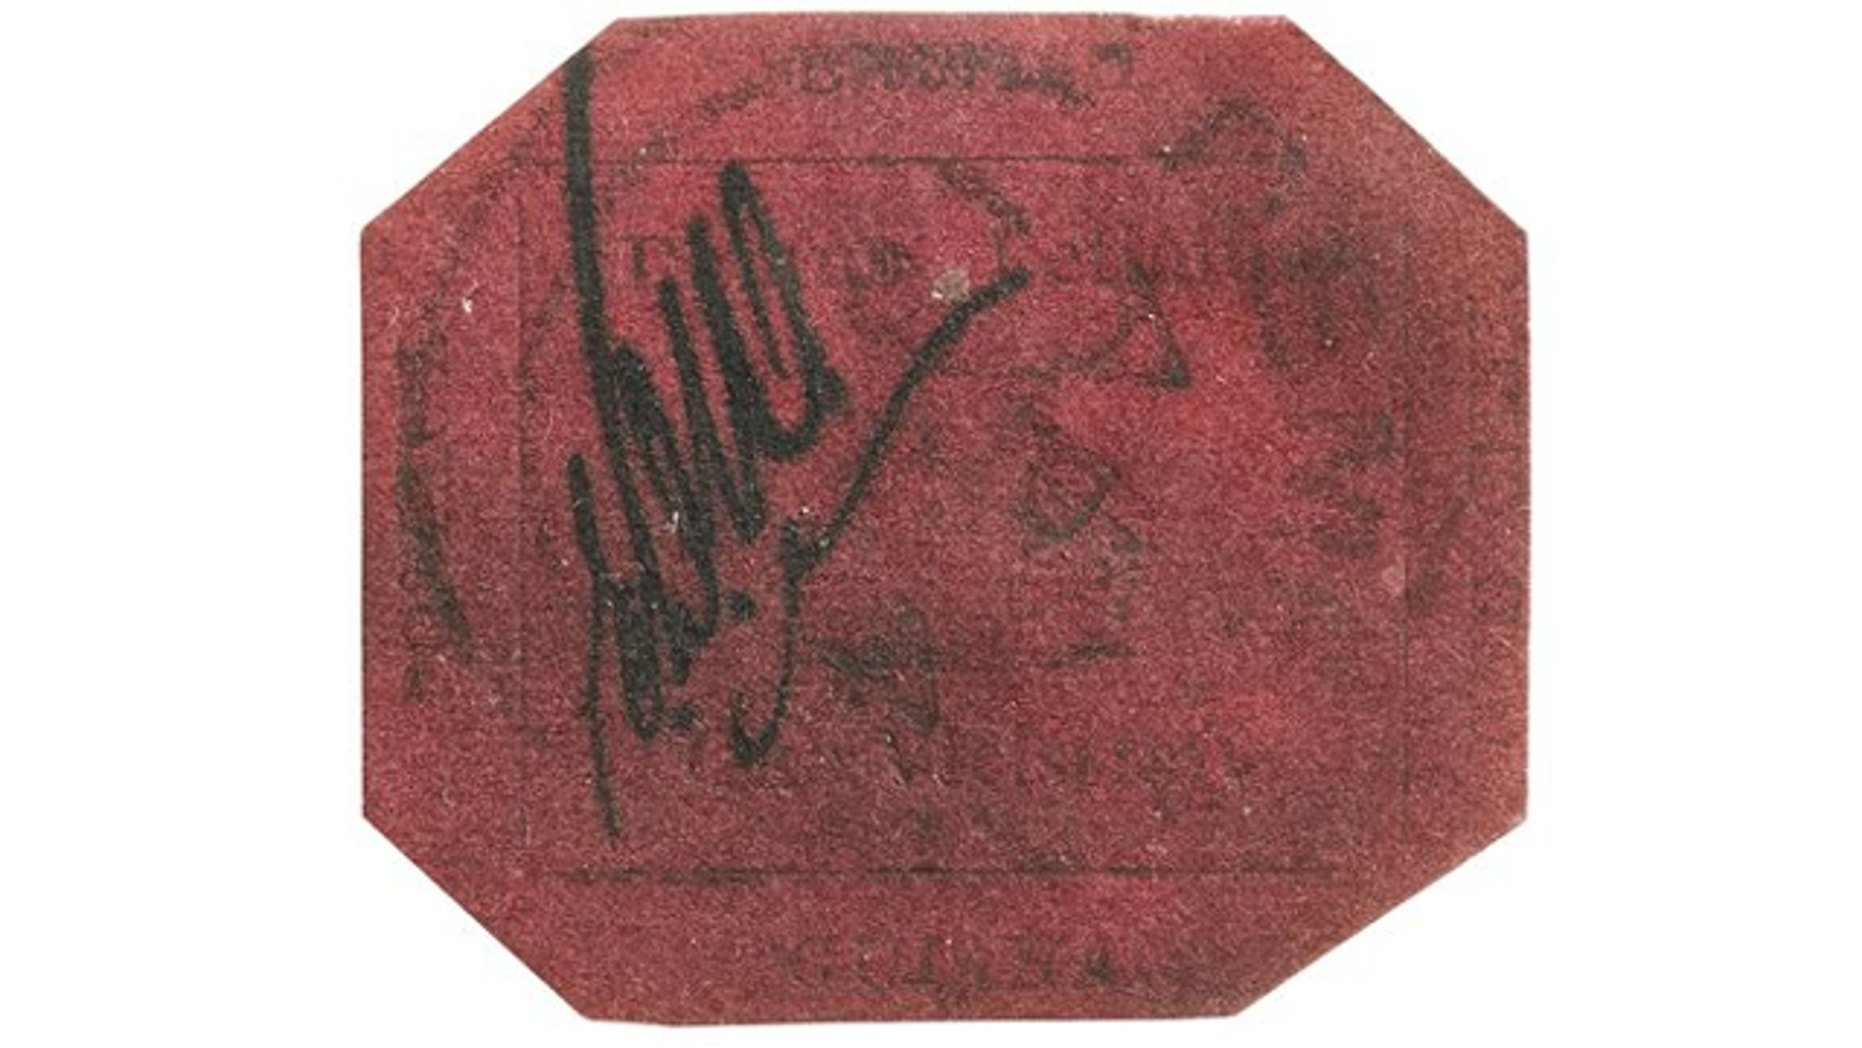 UNDATED: In this photo provided by Sotheby's Auction House, the one-cent 1856 British Guiana stamp is shown.